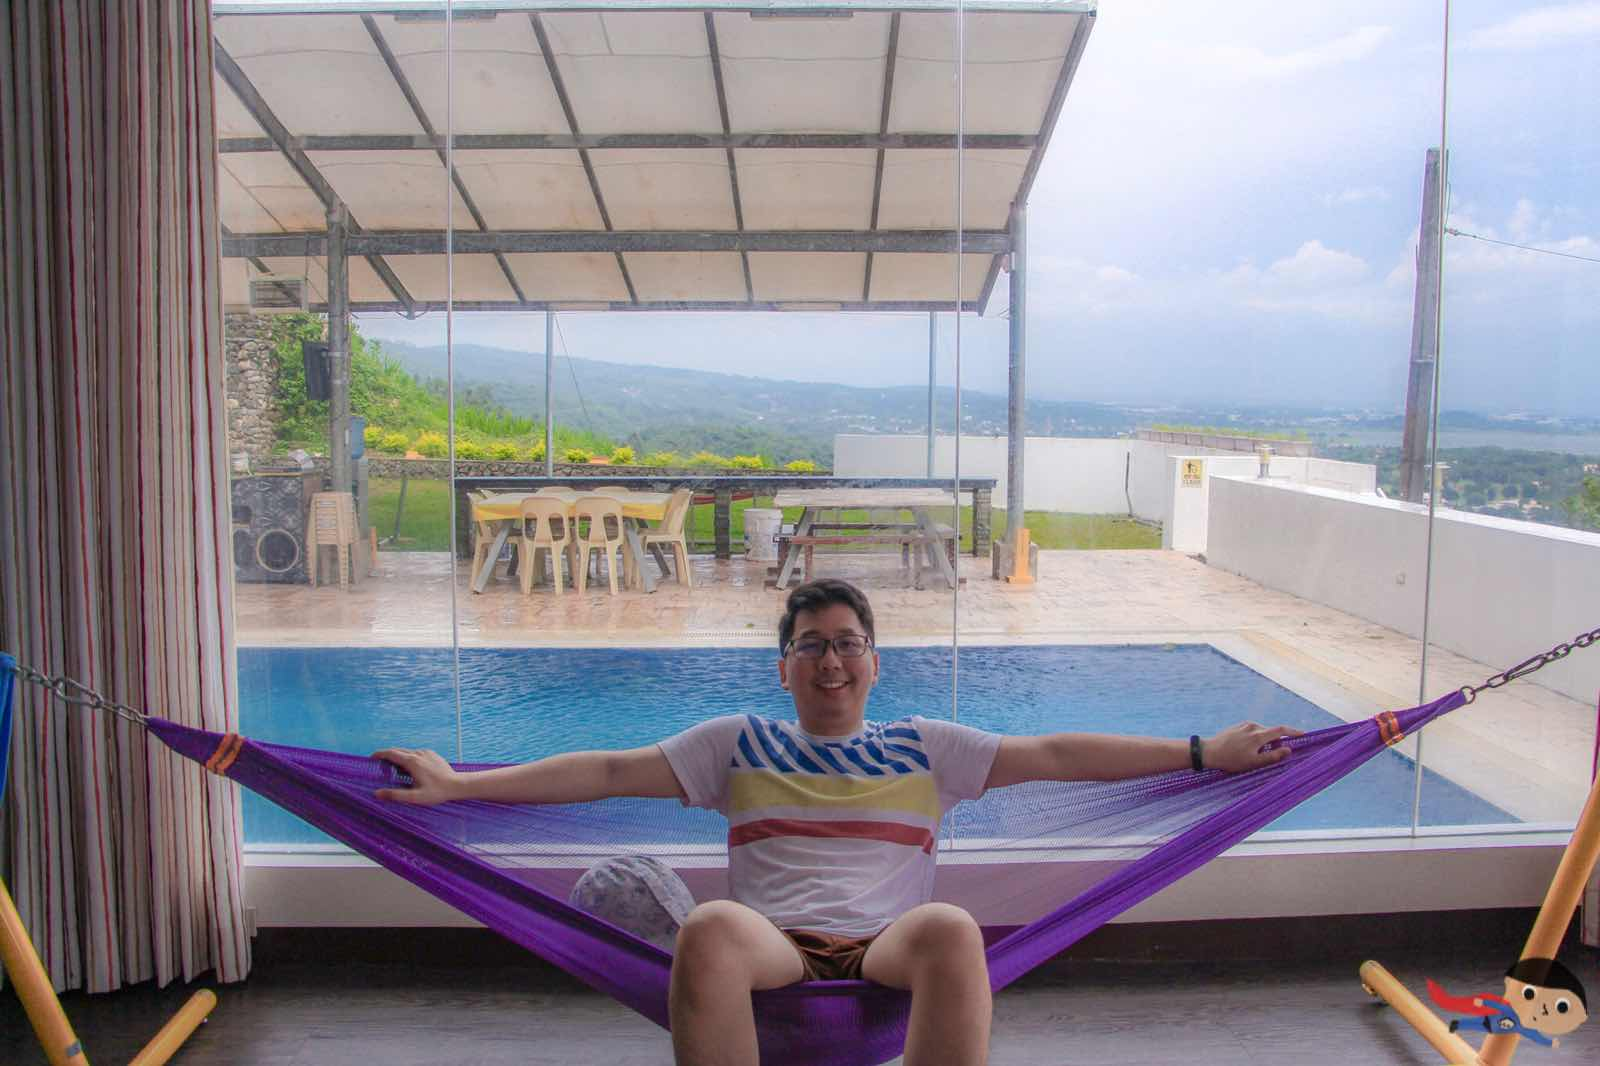 Renz Cheng in Jamaica Peak Resort